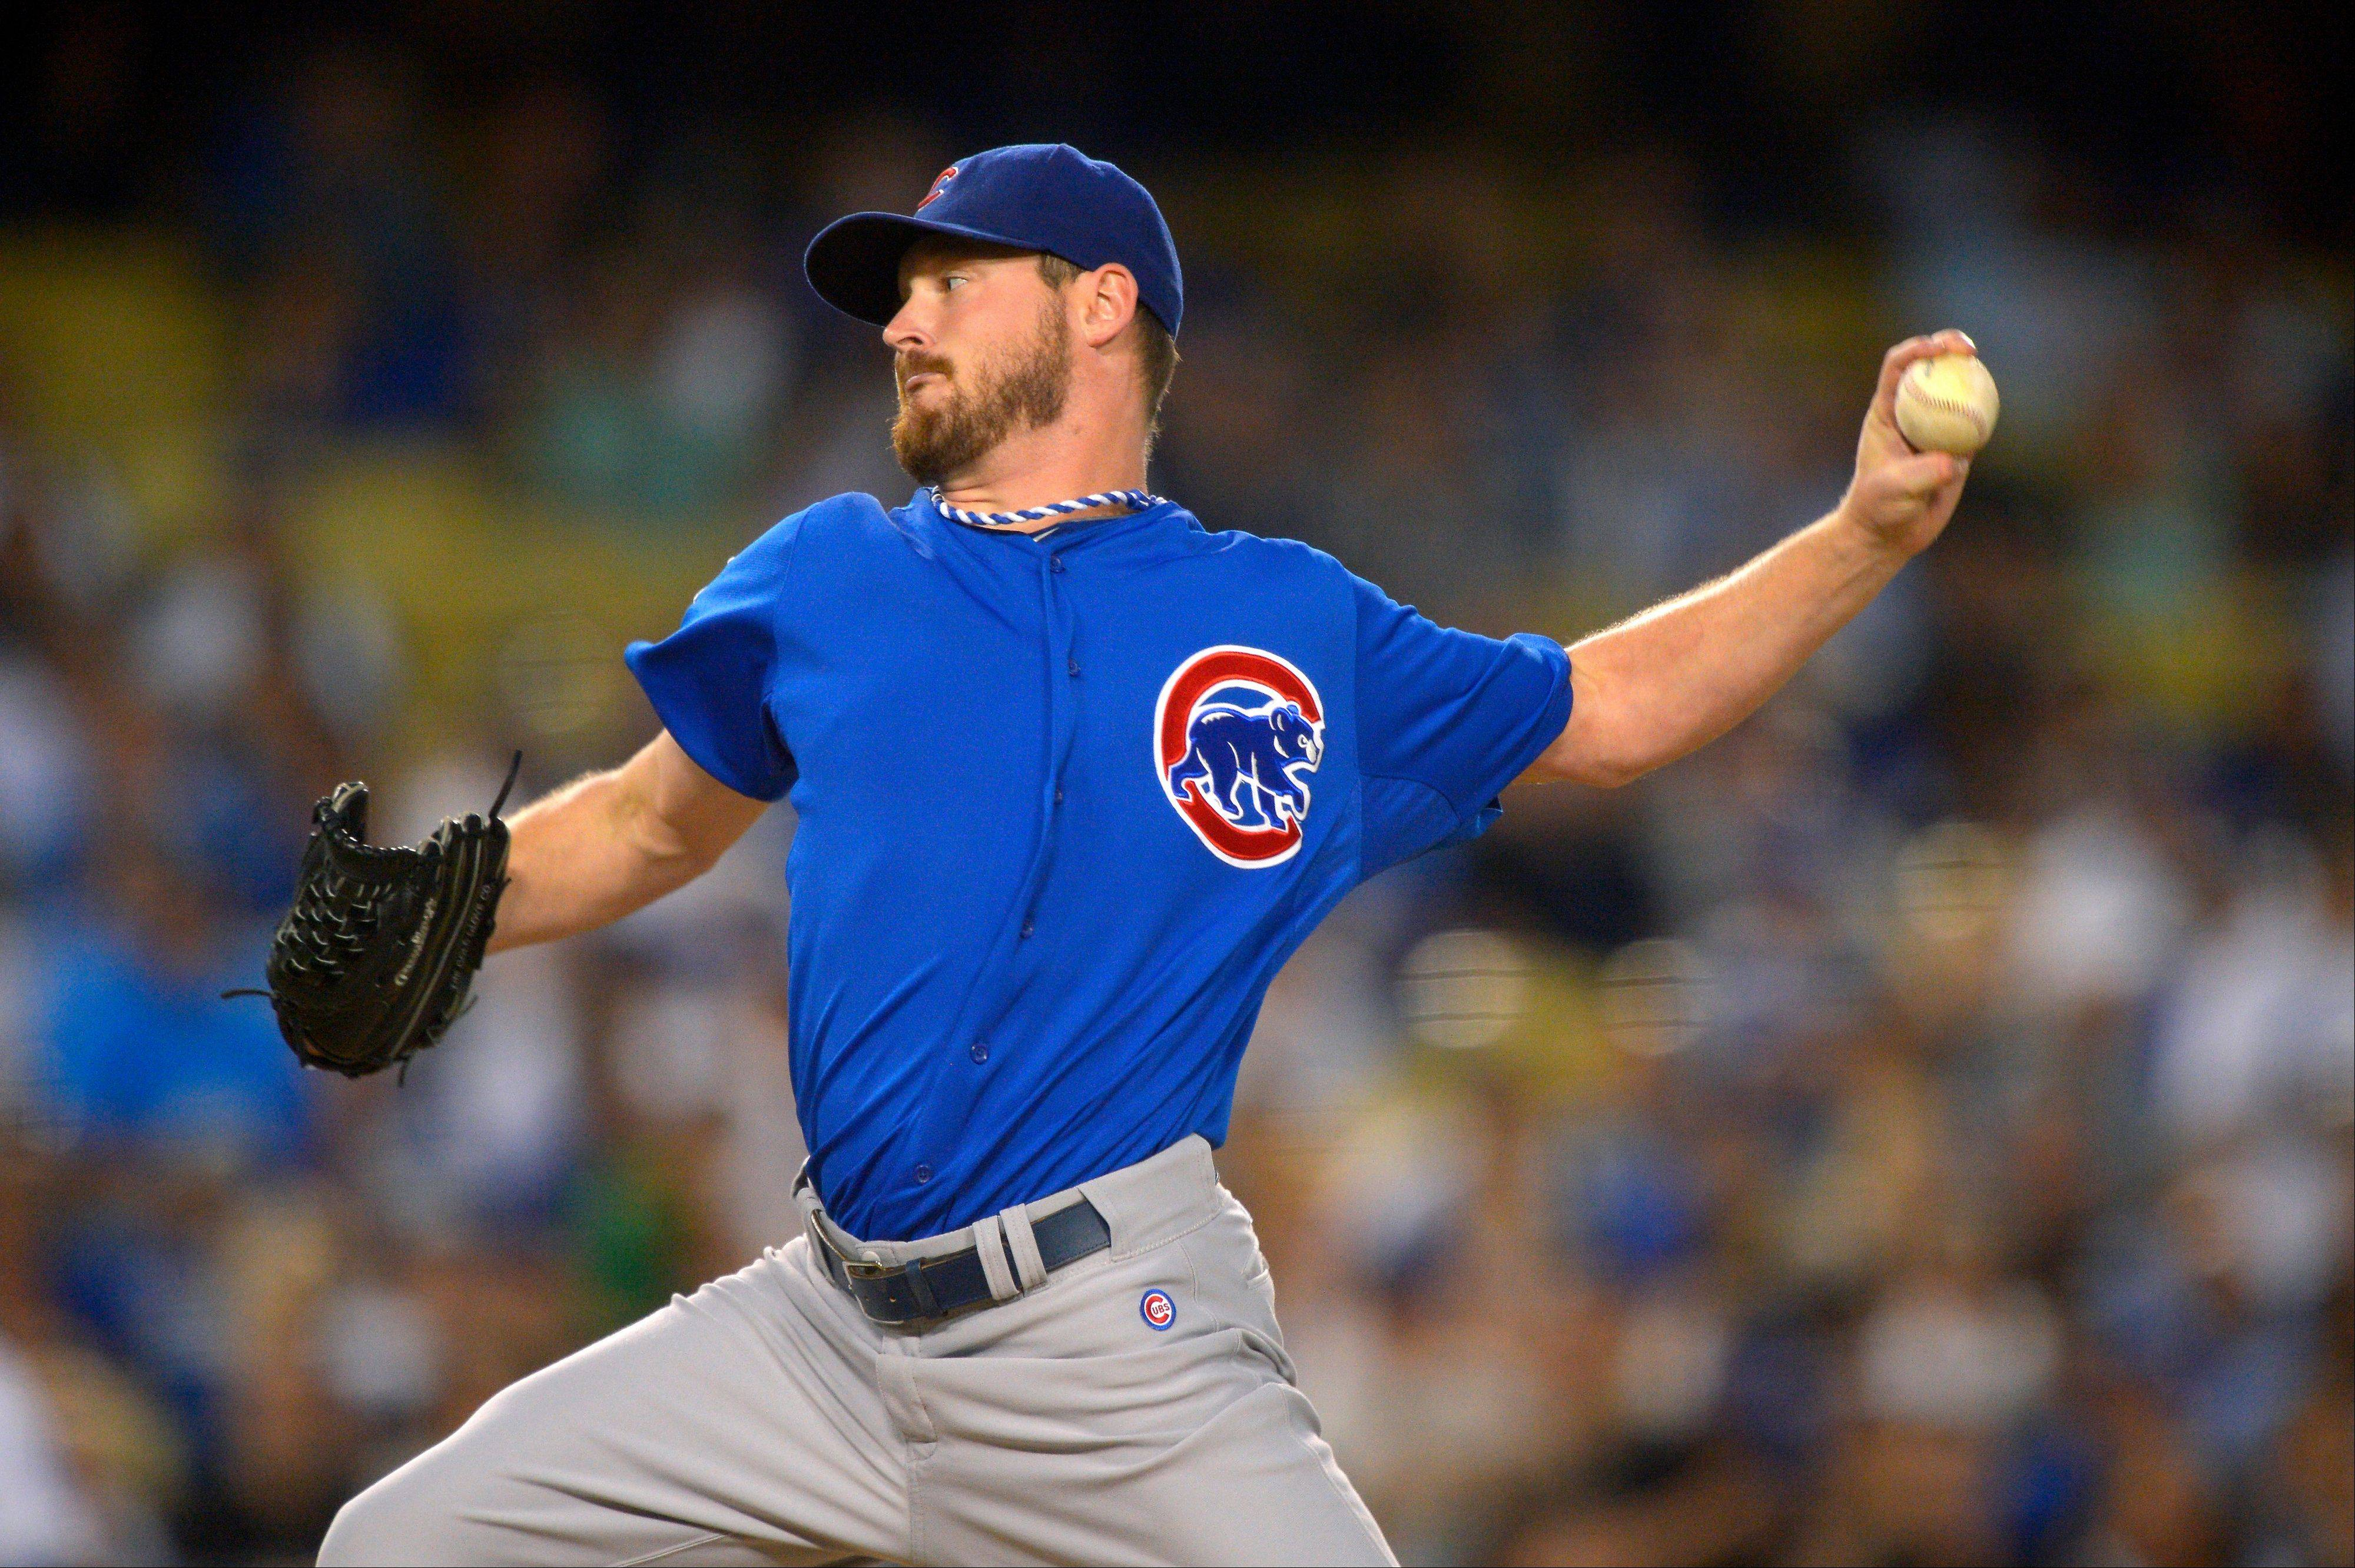 Chicago Cubs starting pitcher Travis Wood throws to the plate during the first inning of their baseball game against the Los Angeles Dodgers, Tuesday, Aug. 27, 2013, in Los Angeles.